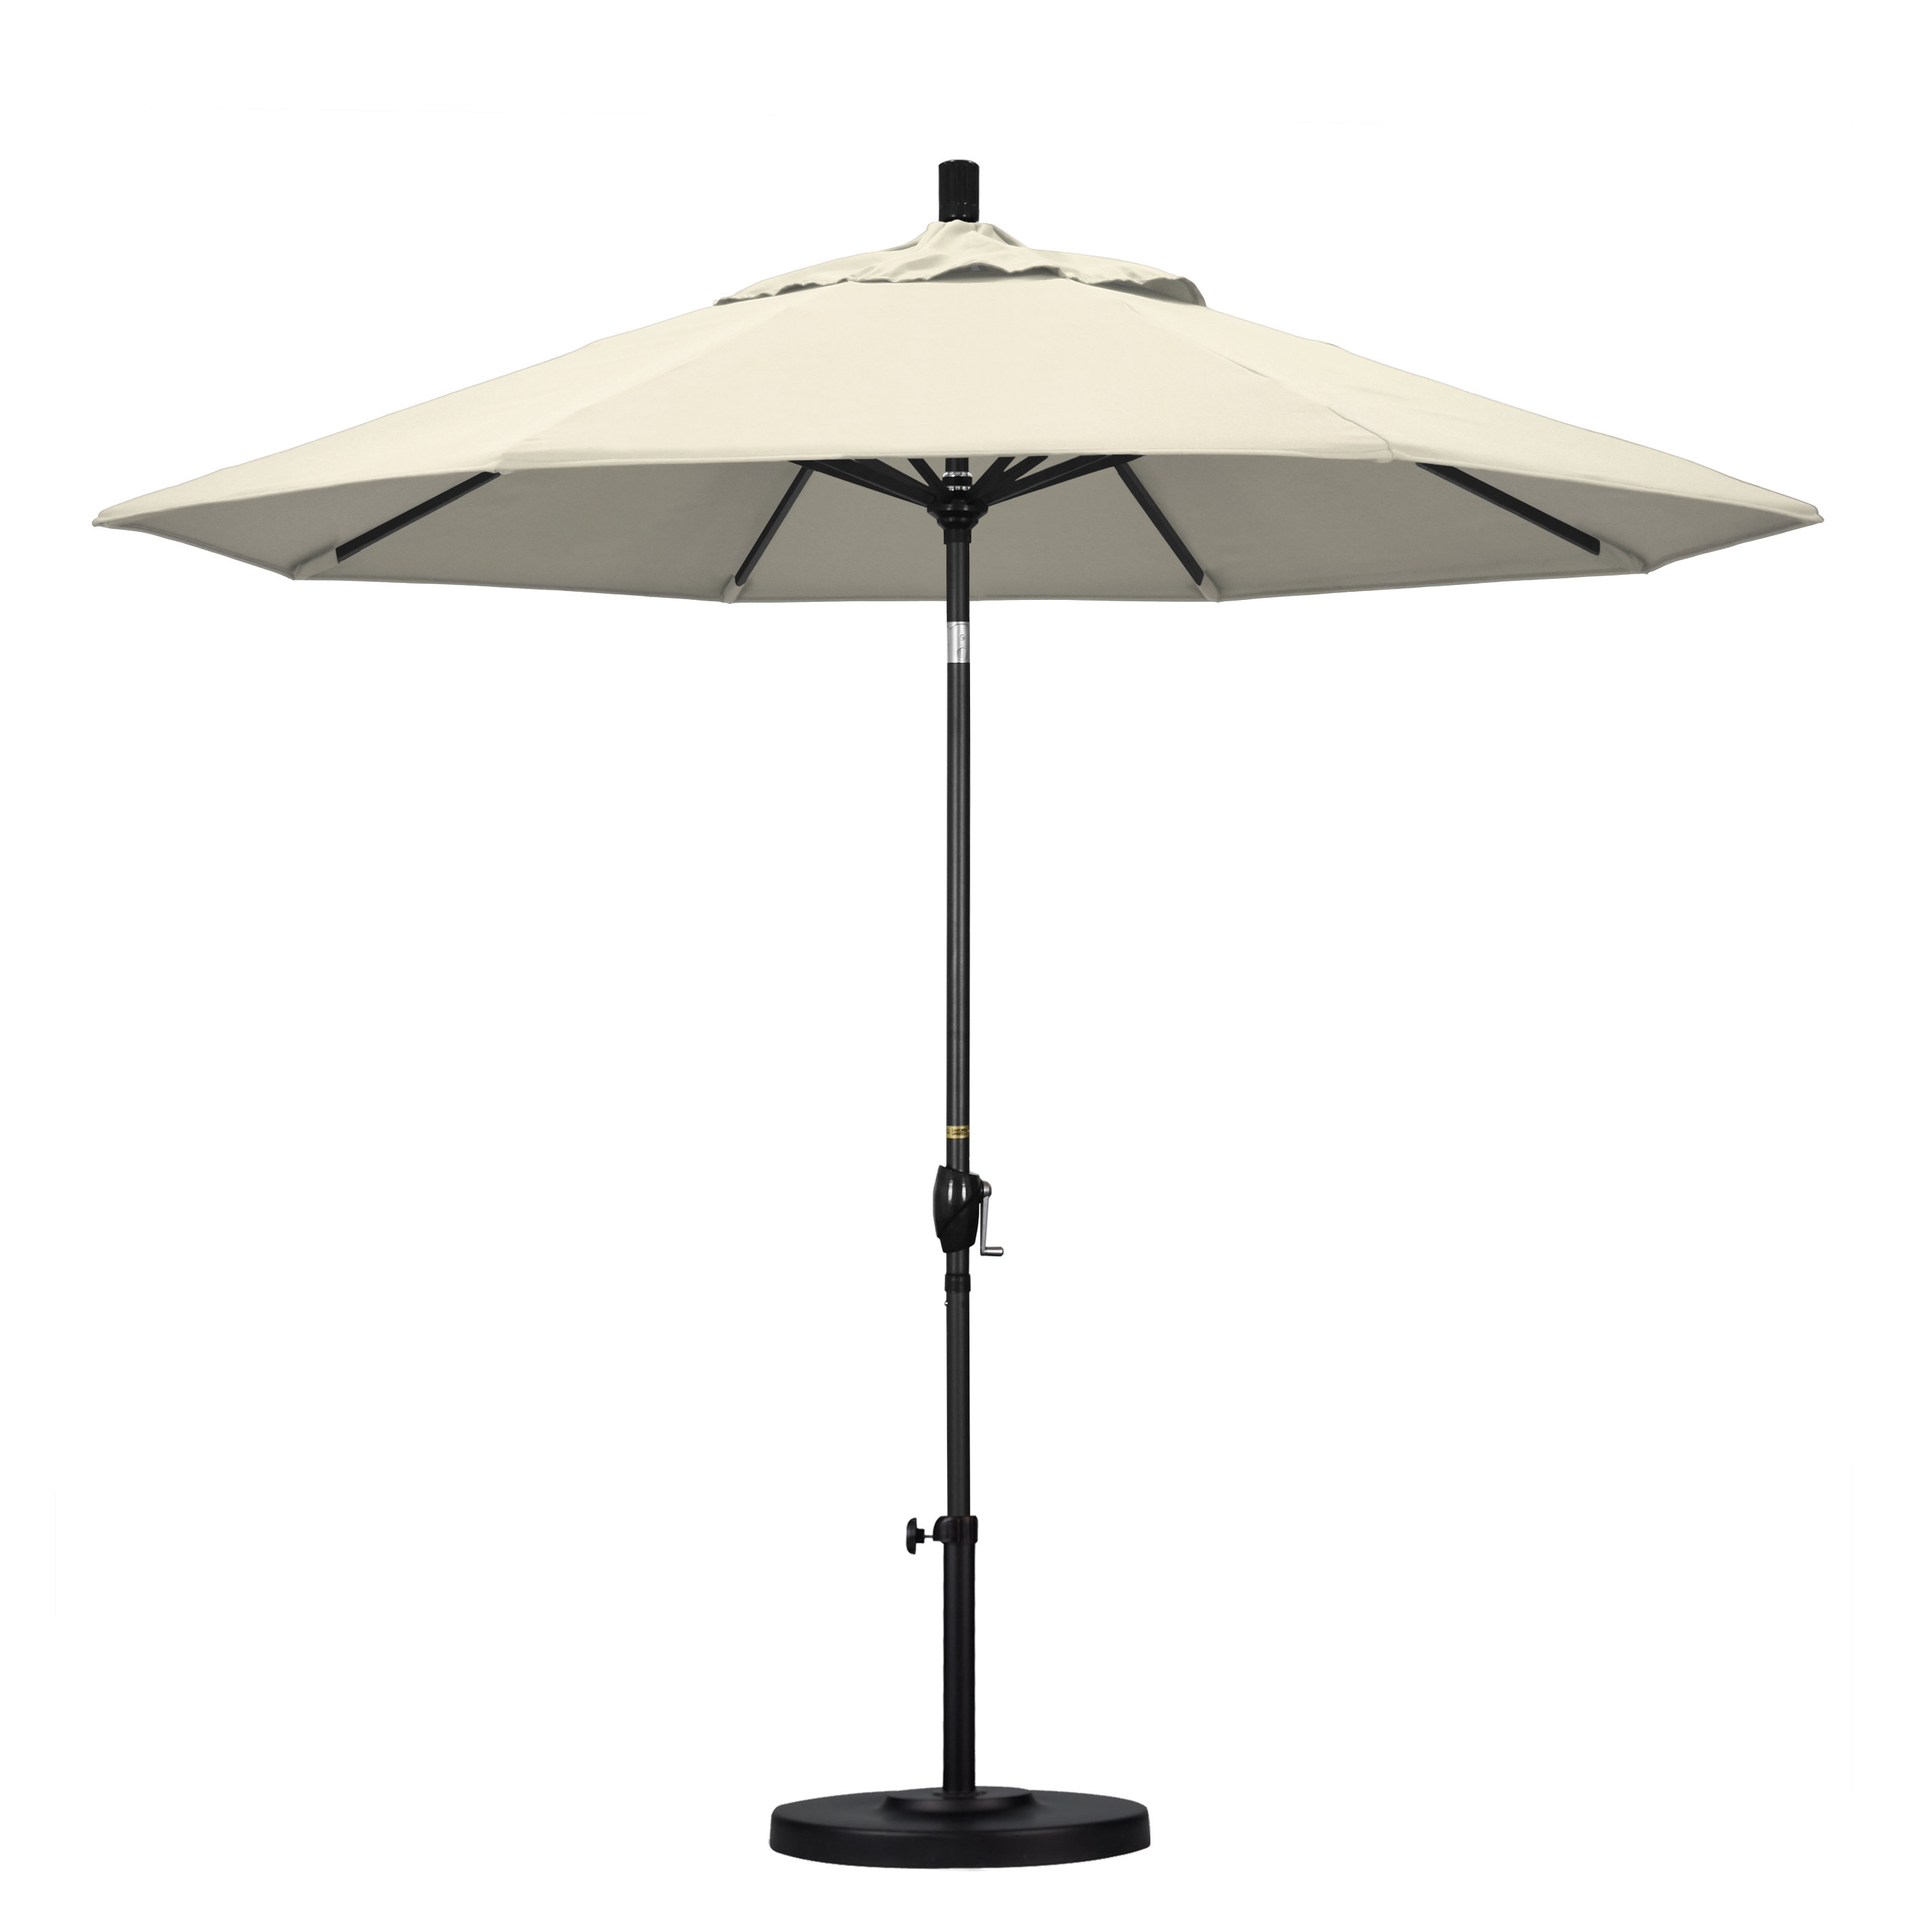 darby home iuka market umbrella reviews spring haven accent table ballard slipcovers small pub metal nesting tables set brown wicker end wisteria tiffany style lamps ceiling